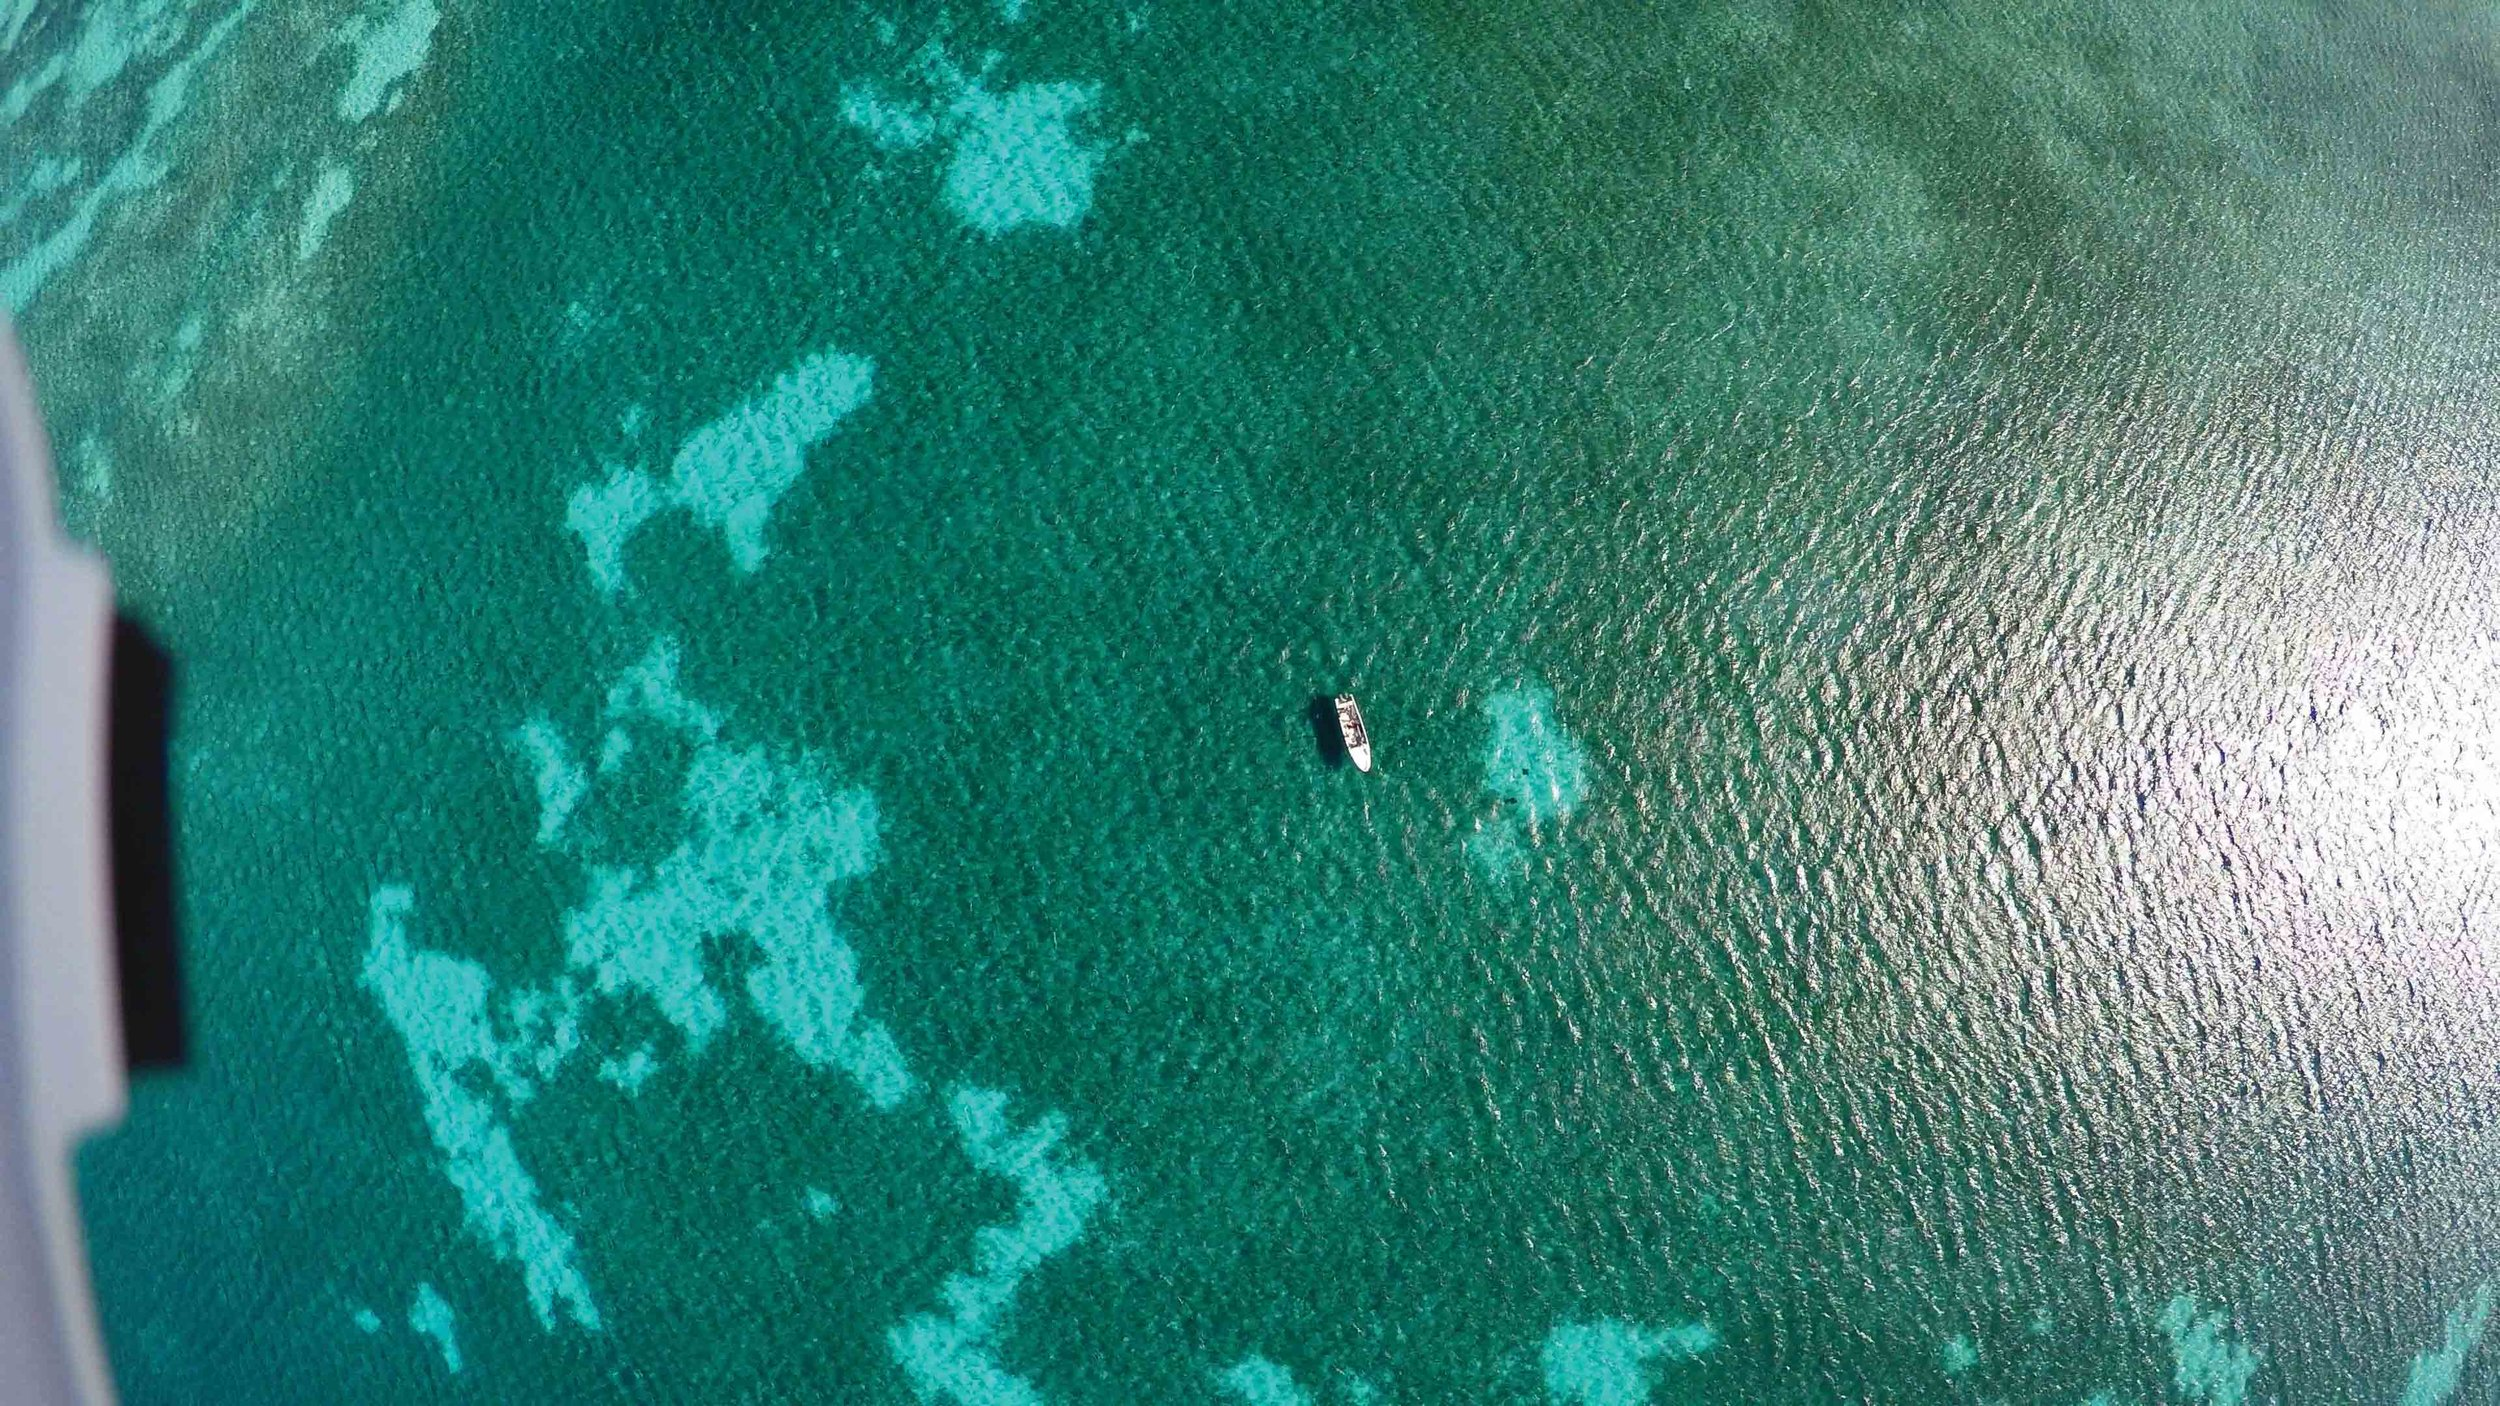 The researchers' boat can be seen above seagrass habitat in this image captured by a quadcopter drone during research in Turneffe Atoll, Belize. © ERIC ANGEL RAMOS